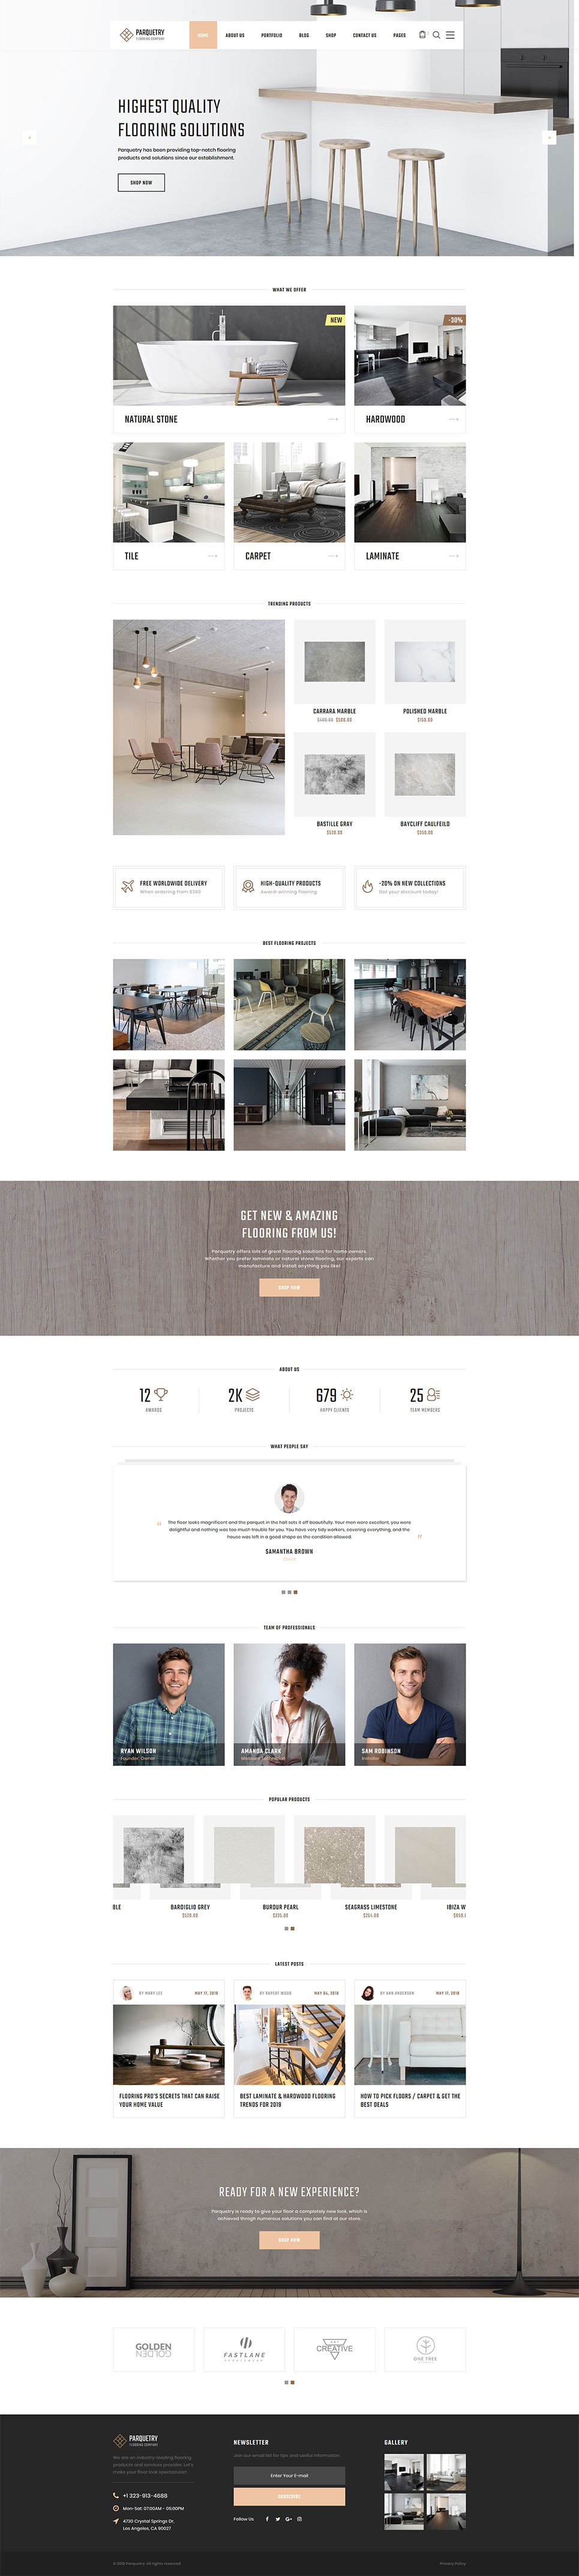 Wooden Flooring Website Template New Screenshots BIG